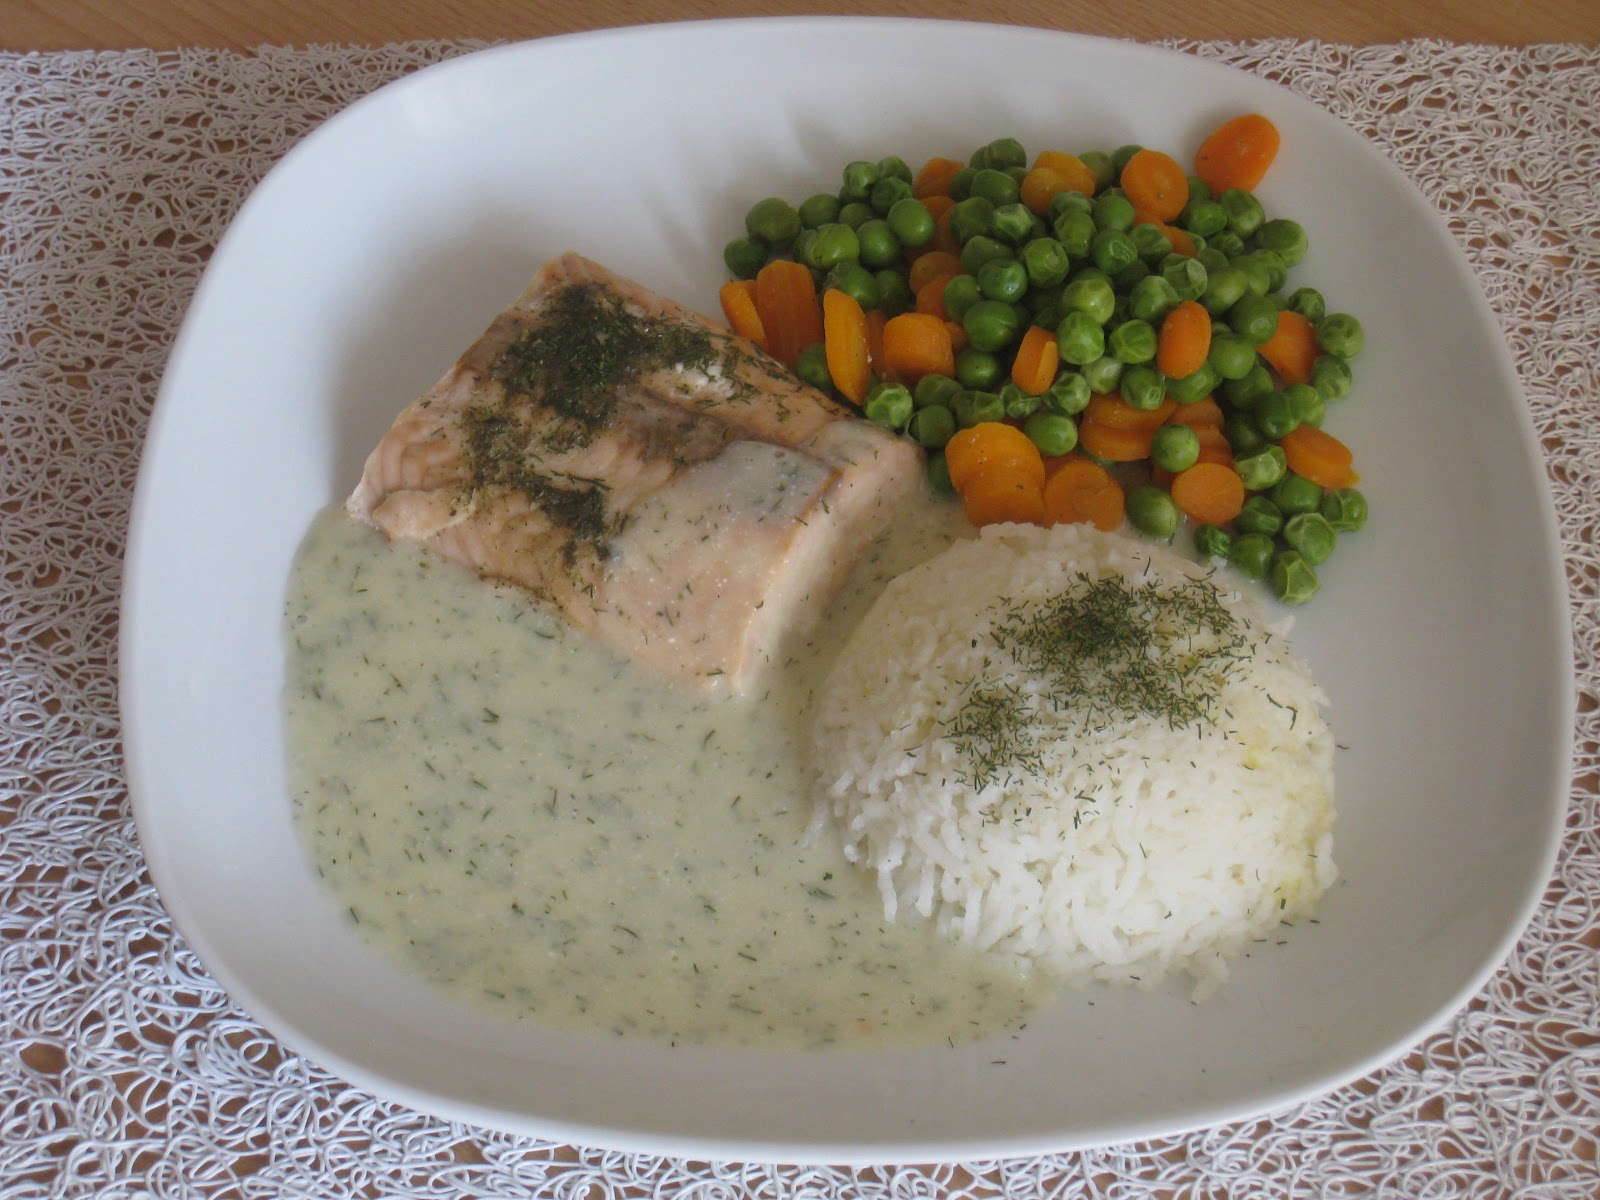 lachs filet in dill rahm sauce silvia 39 s rezepte mit dem thermomix. Black Bedroom Furniture Sets. Home Design Ideas